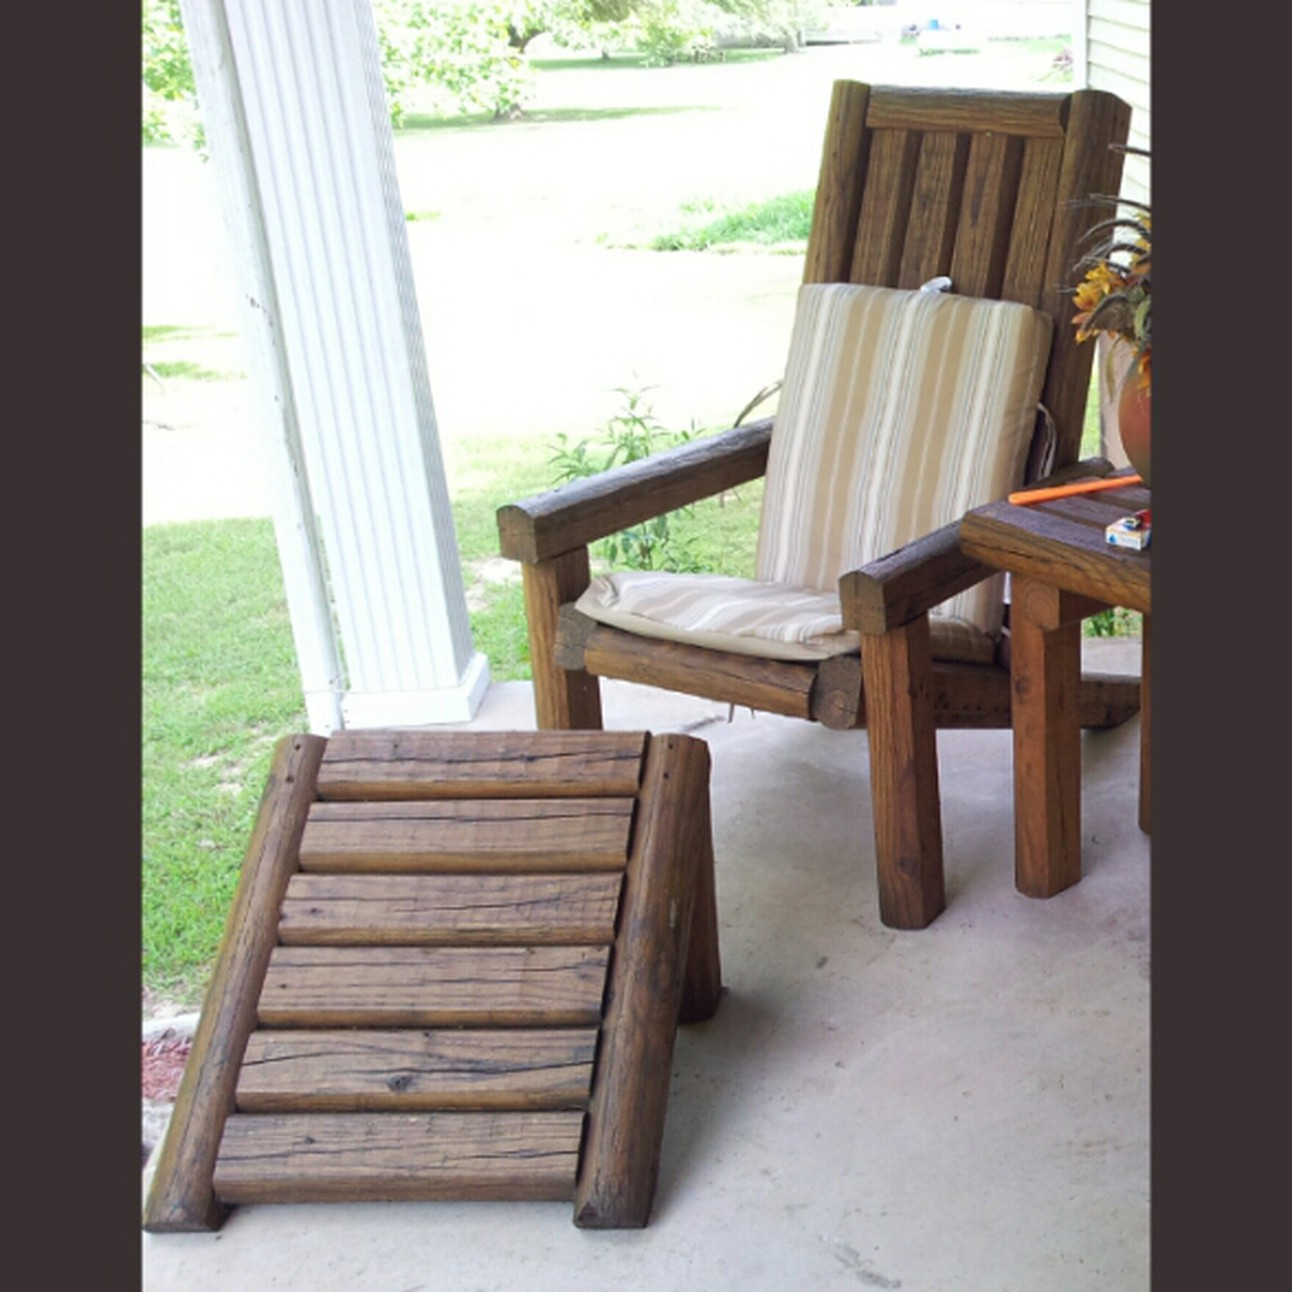 Rustic Landscape Timber Adirondack Chair And Footstool